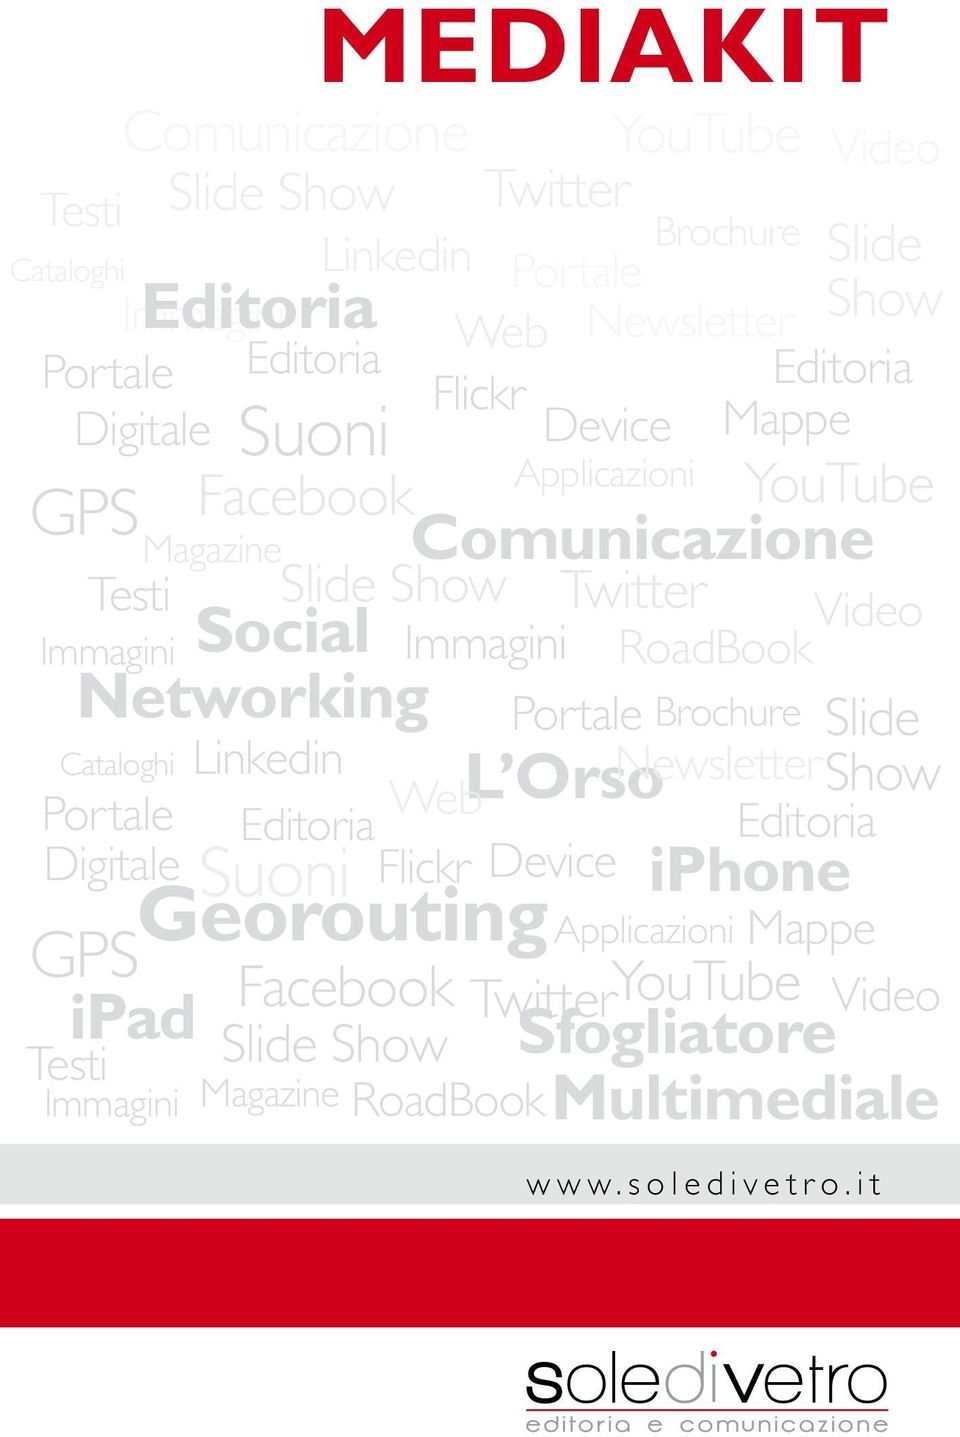 RoadBook Networking Portale Brochure Slide Cataloghi Linkedin L Orso Newsletter Portale Web Show Editoria Editoria Digitale Suoni Flickr Device iphone